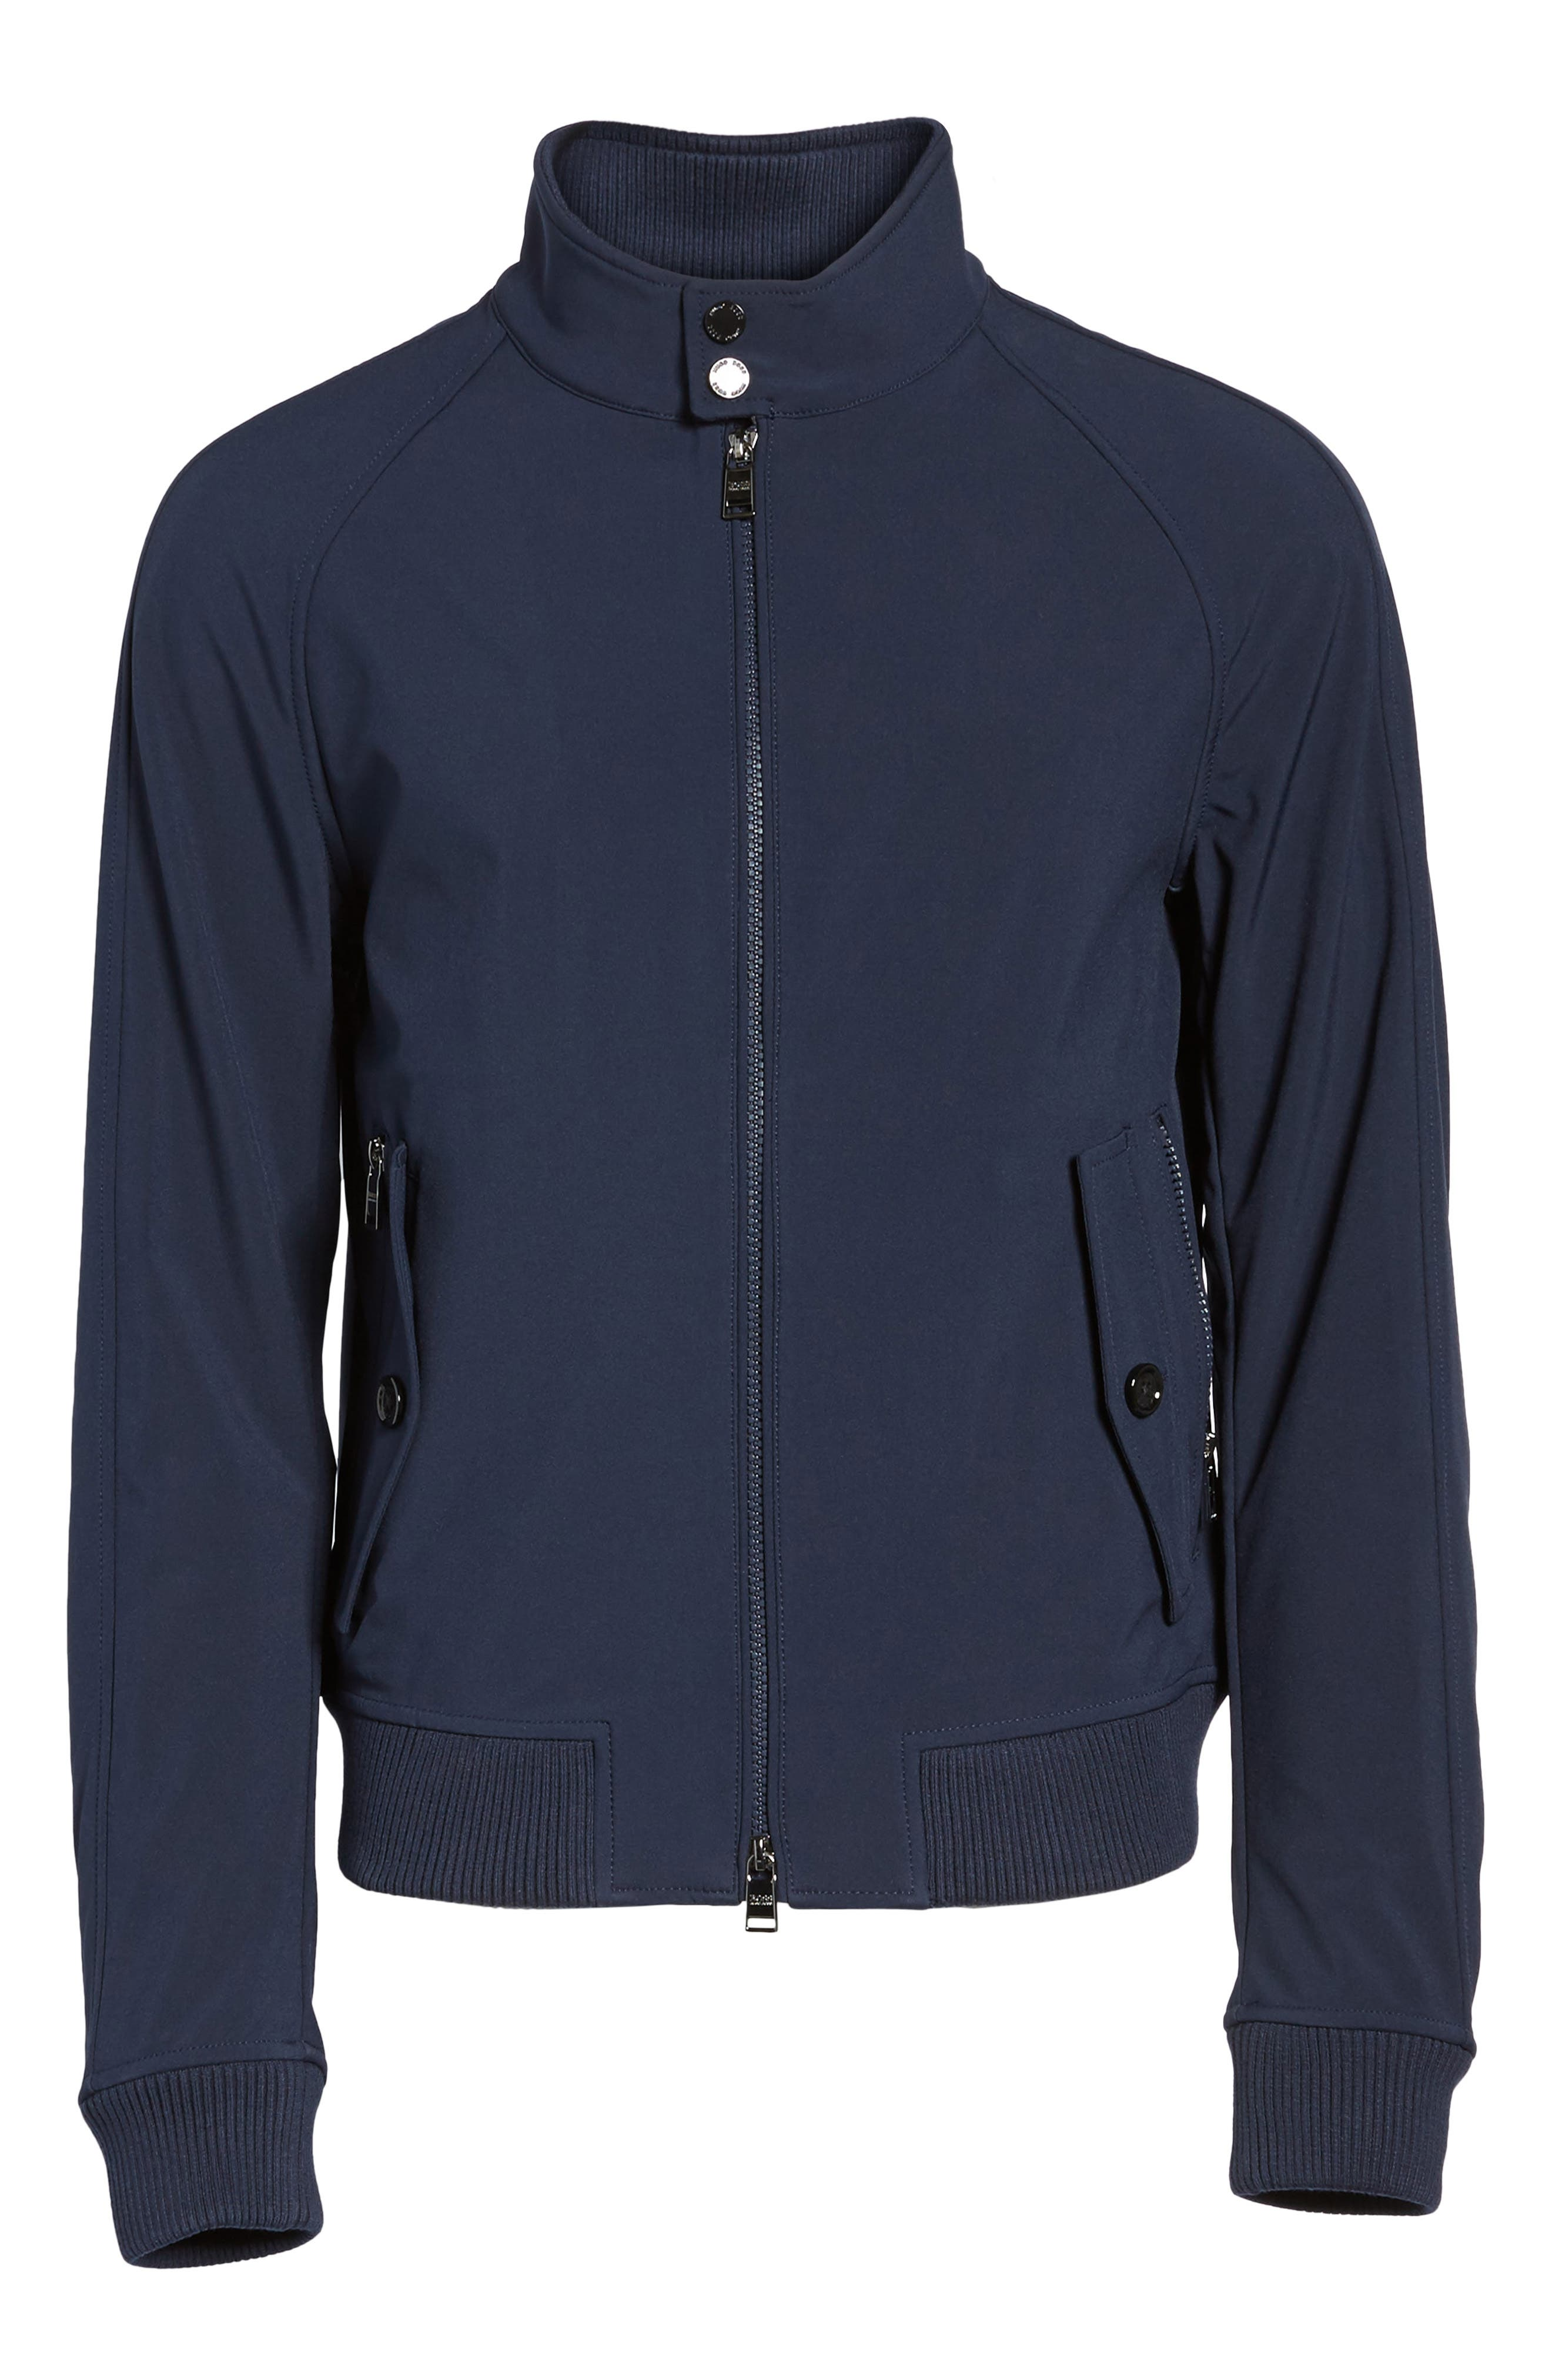 Corva Technical Jacket,                             Alternate thumbnail 5, color,                             Navy